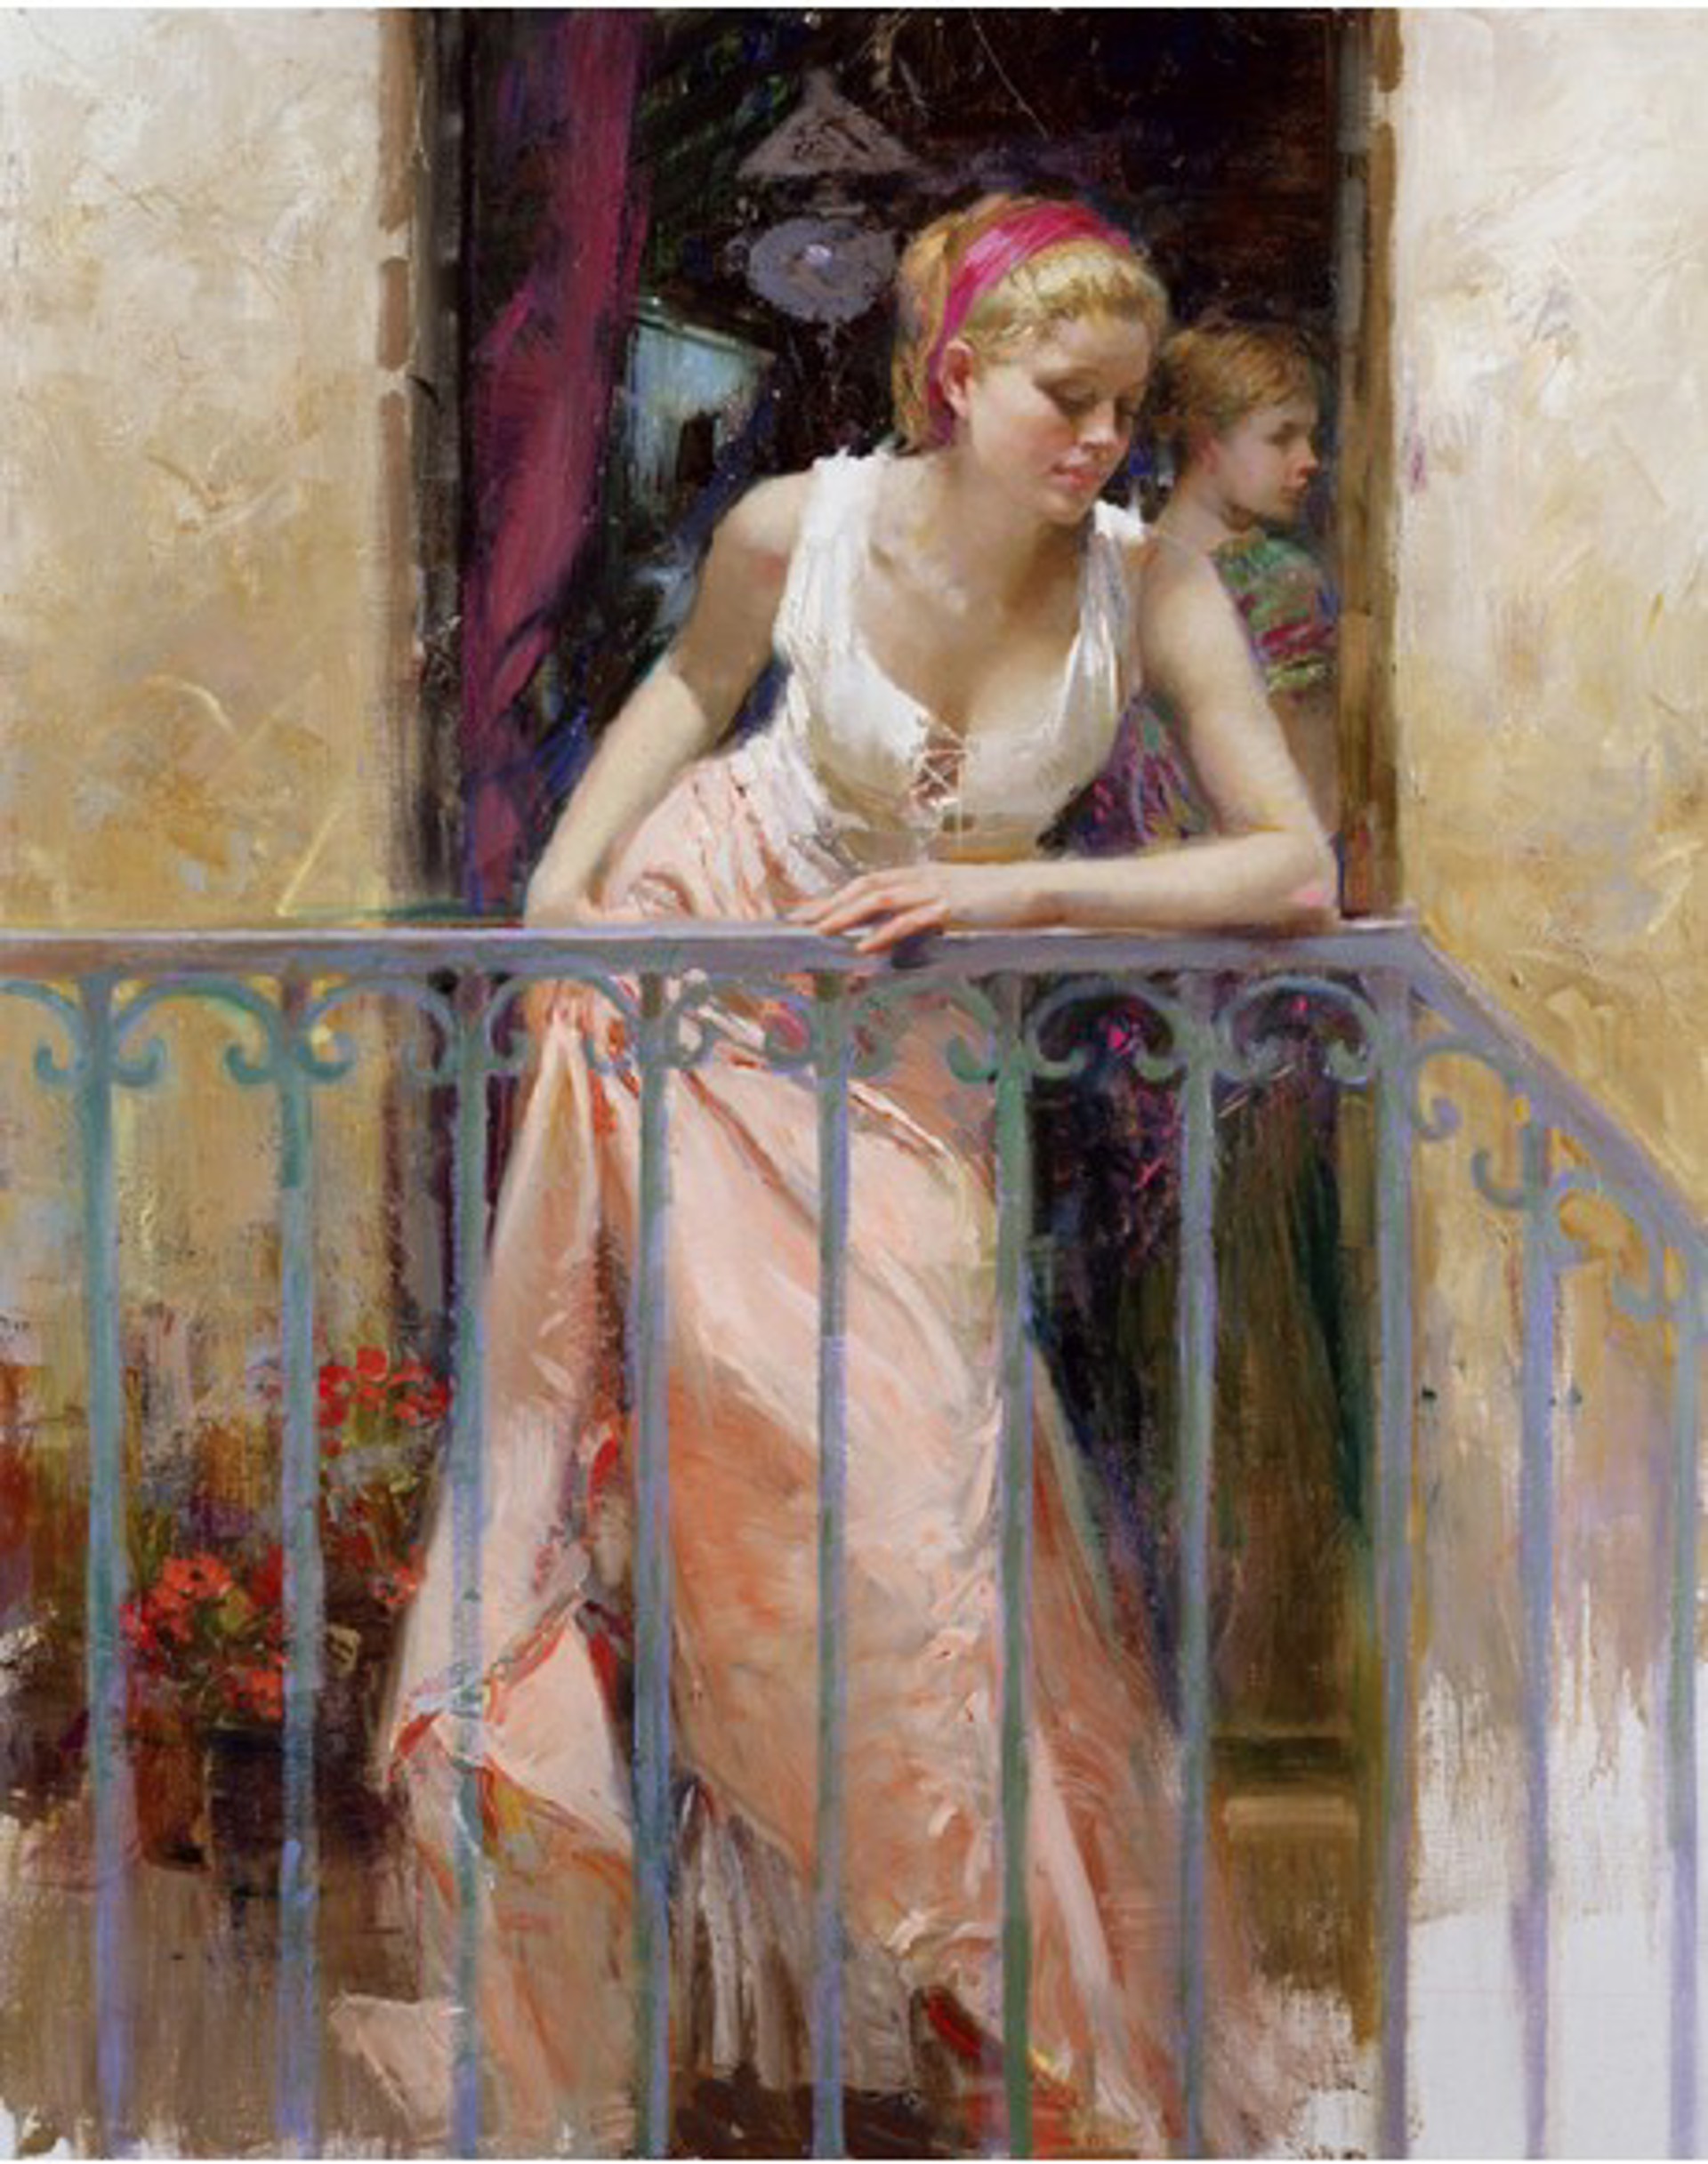 At the Balcony by Pino